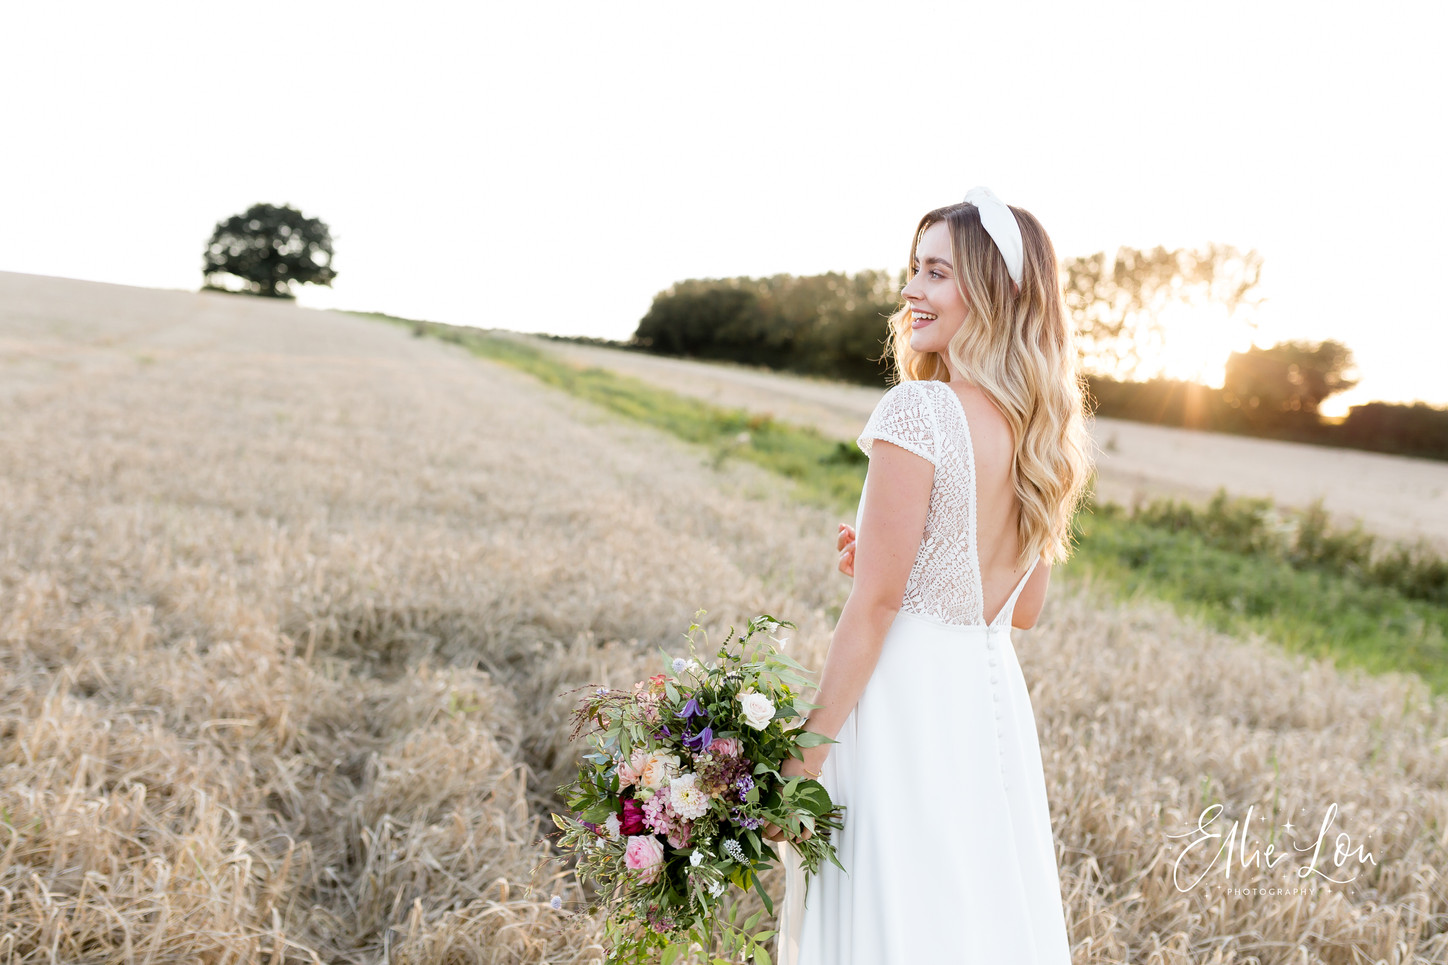 Somerset Wedding Photographer - Ellie Lou Photography